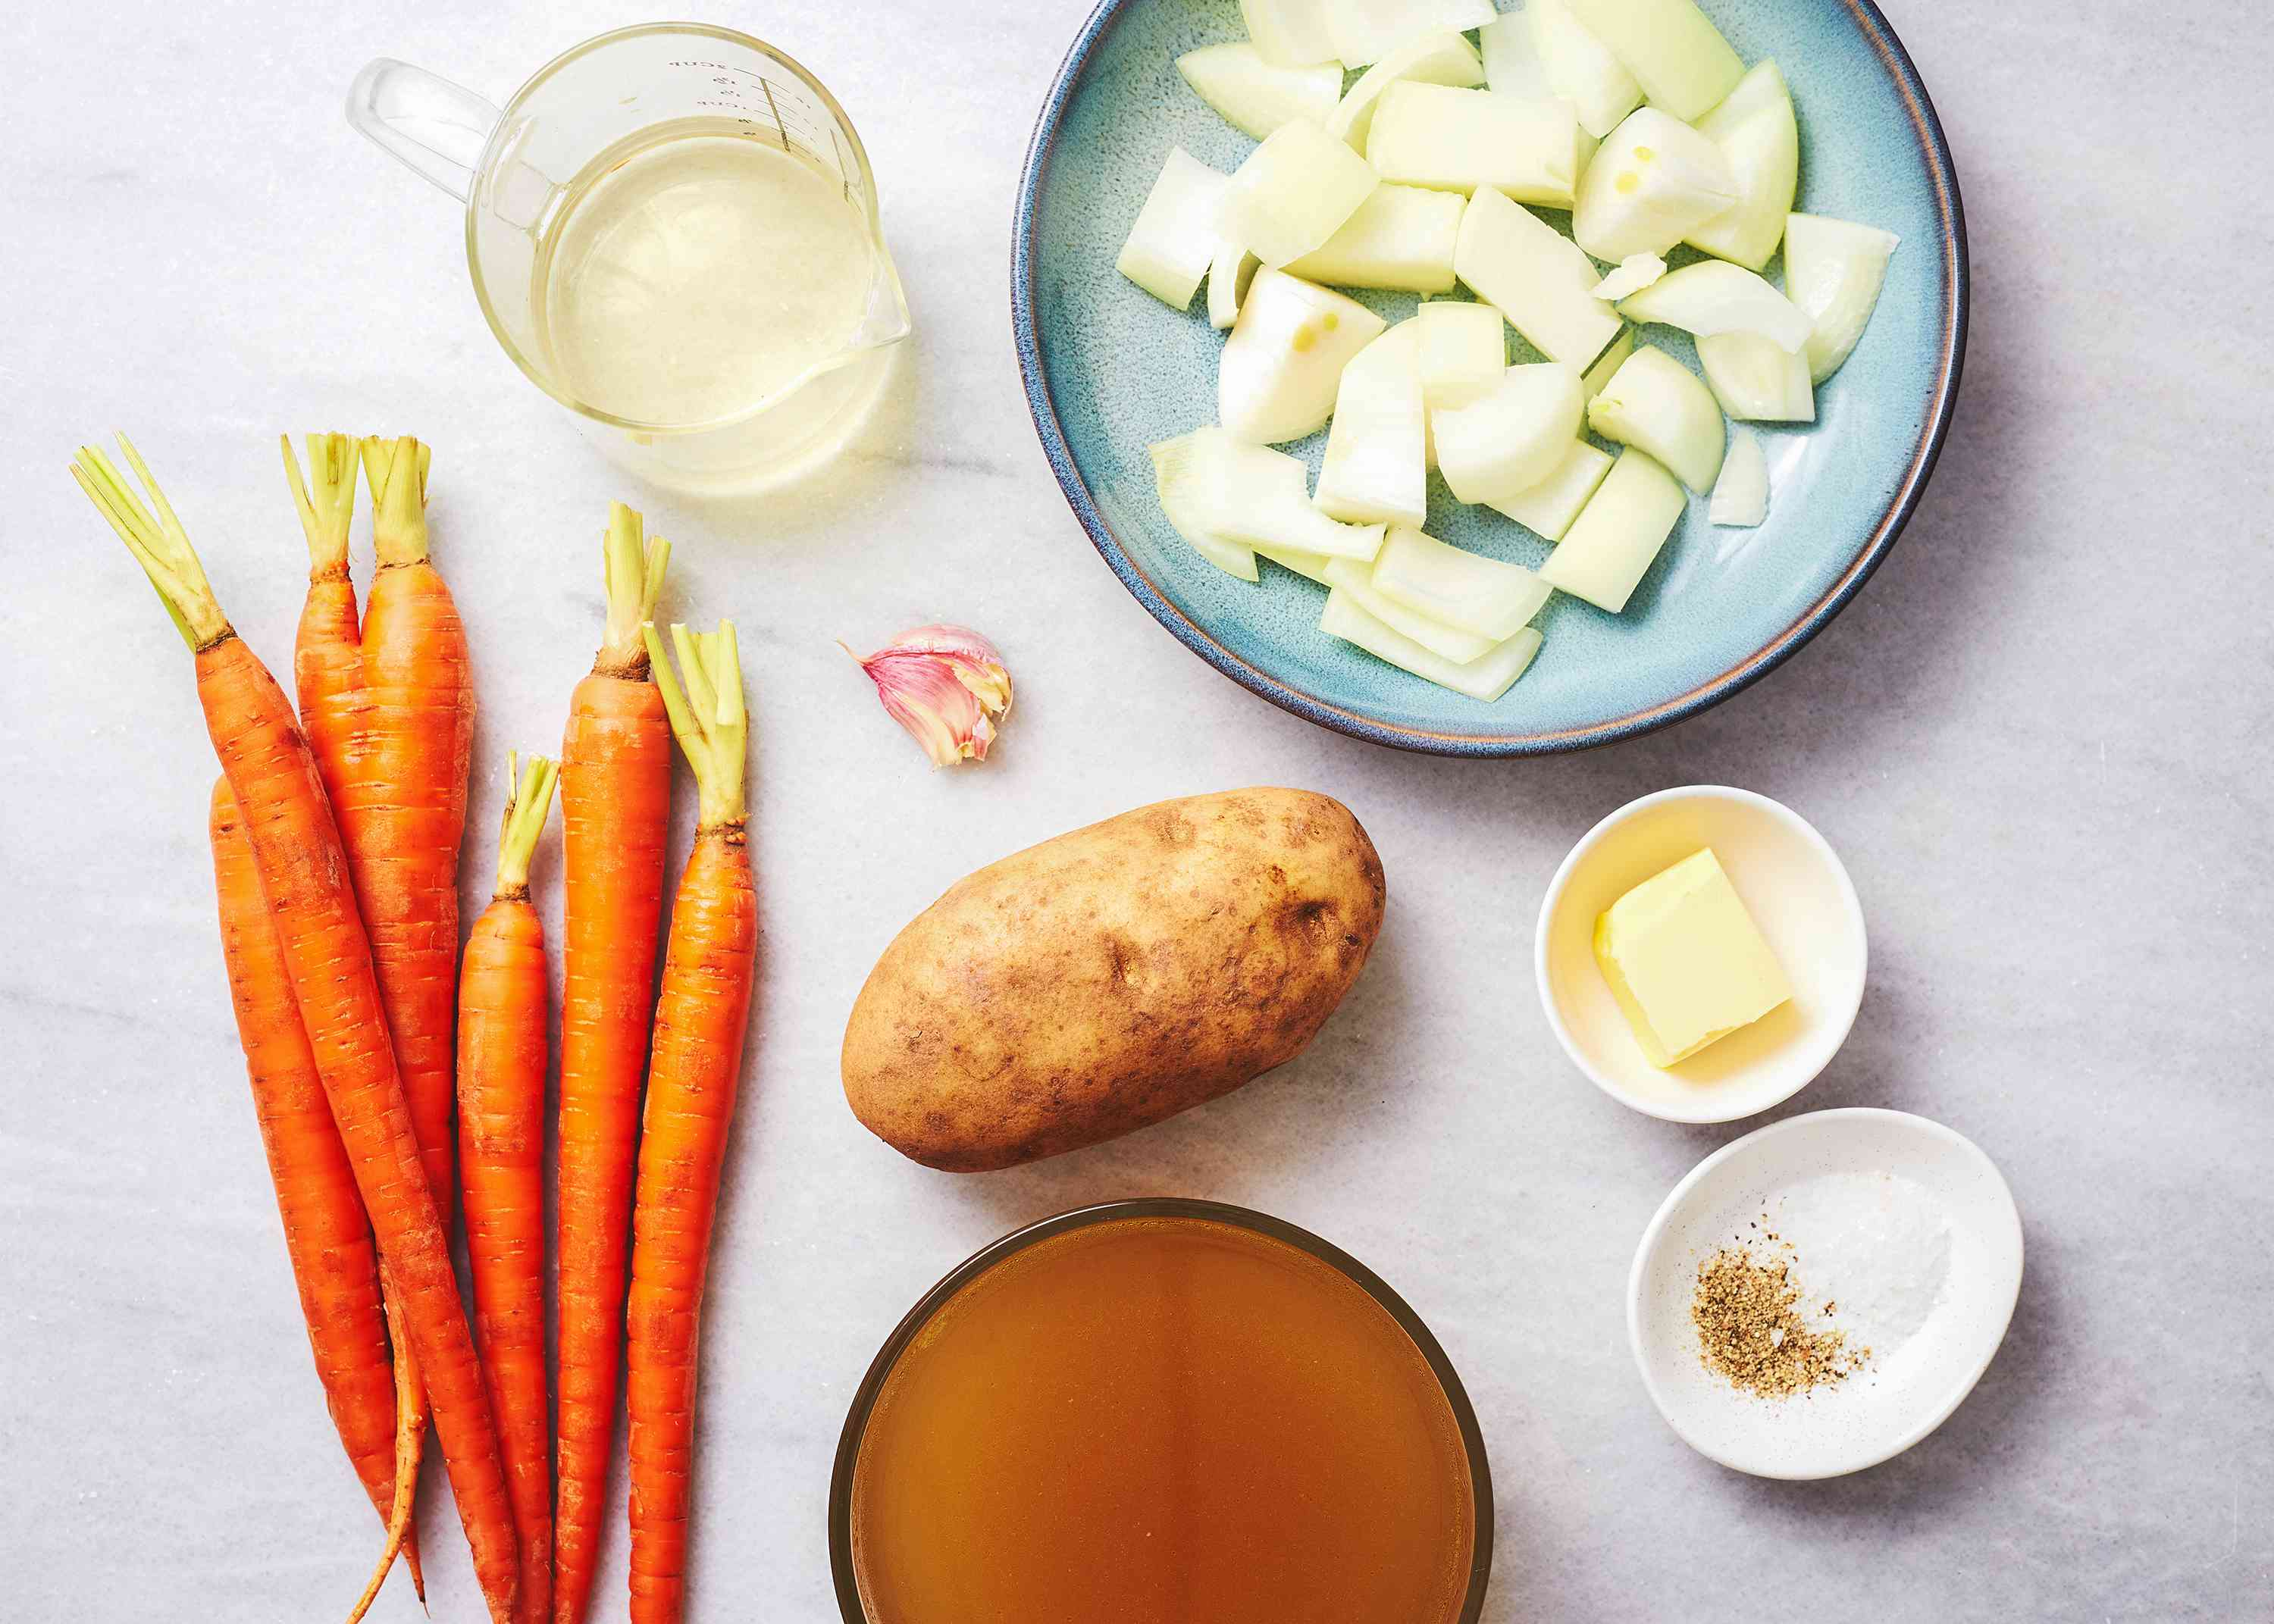 Purée of Carrot Soup ingredients